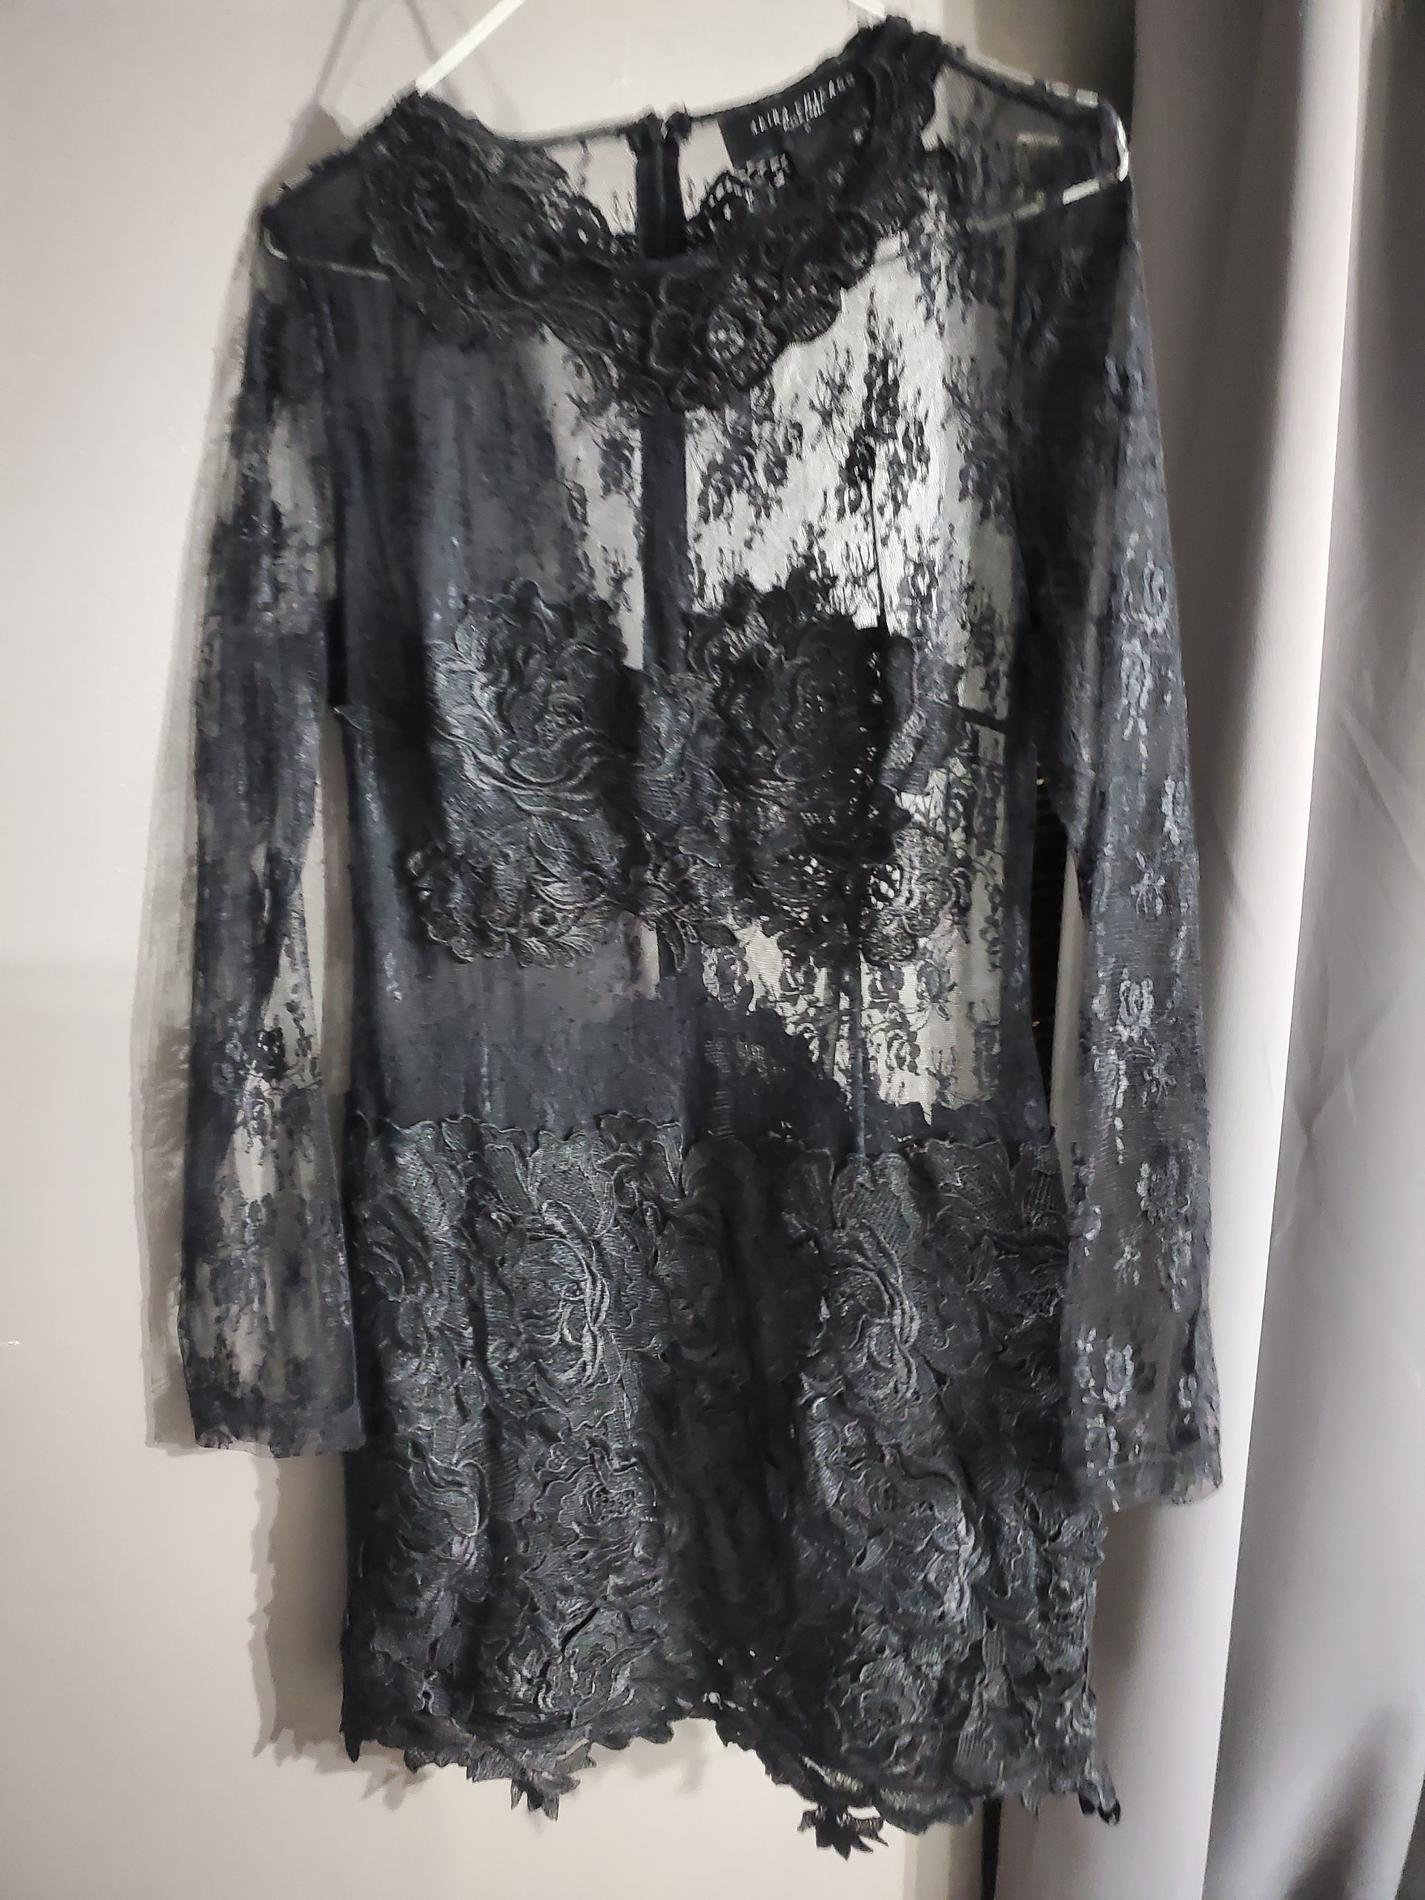 AKIRA Black Size 8 Sheer Nightclub Lace Cocktail Dress on Queenly